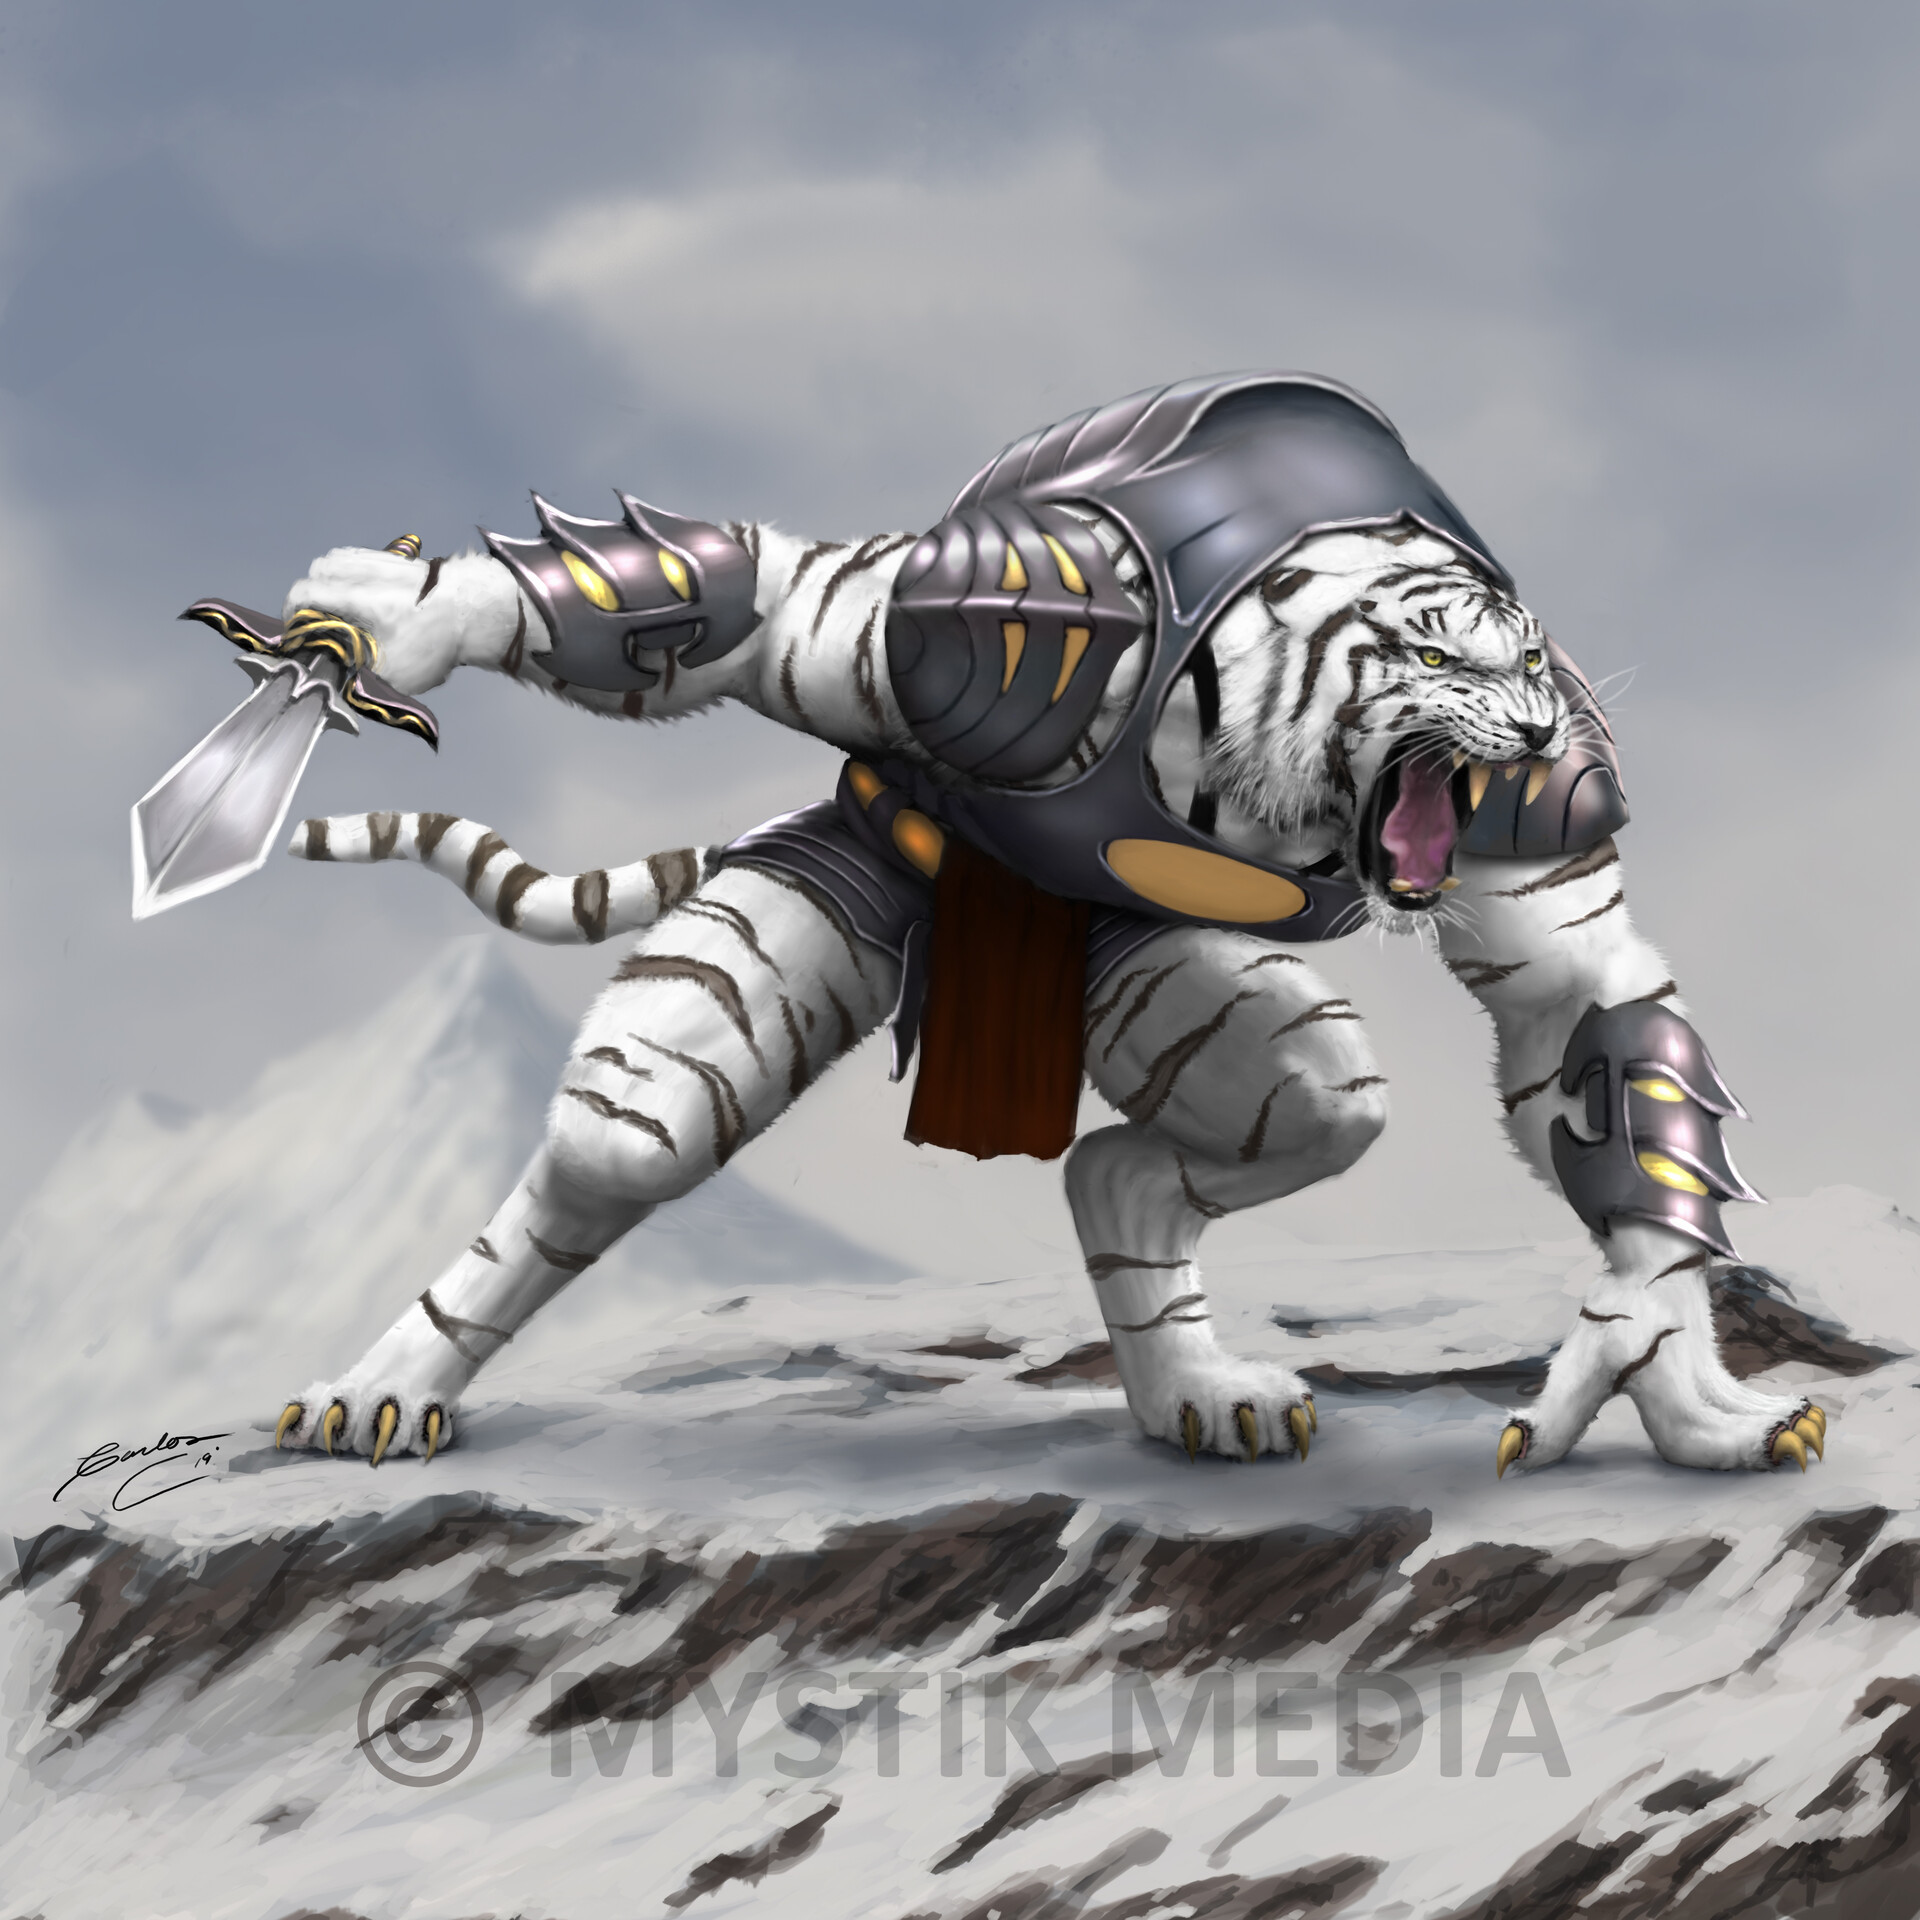 Carlos contreras white tiger warrior final